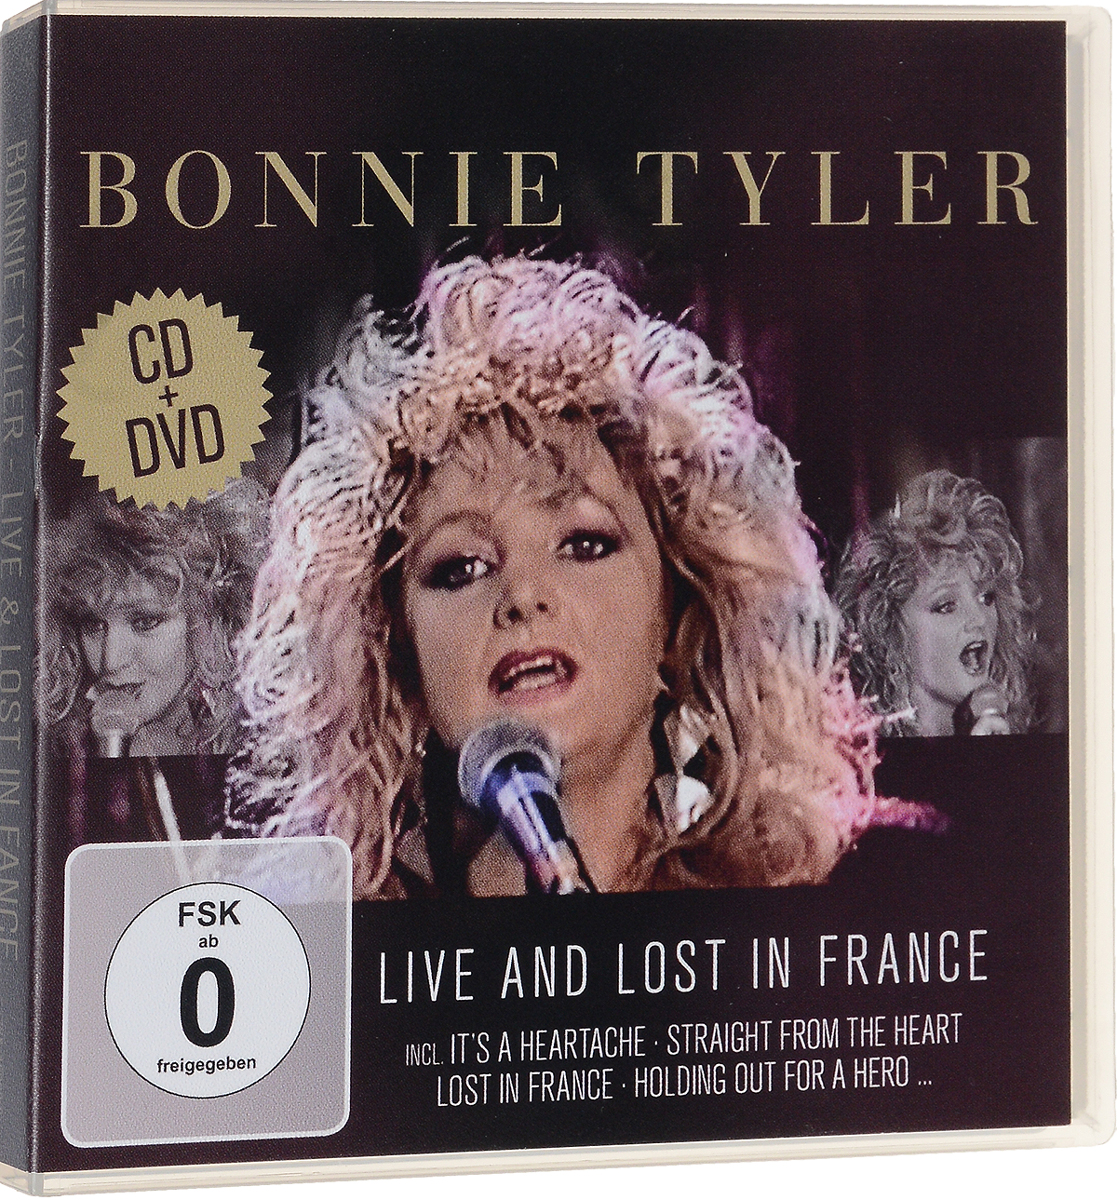 Bonnie Tyler: Live and Lost in France (CD + DVD)